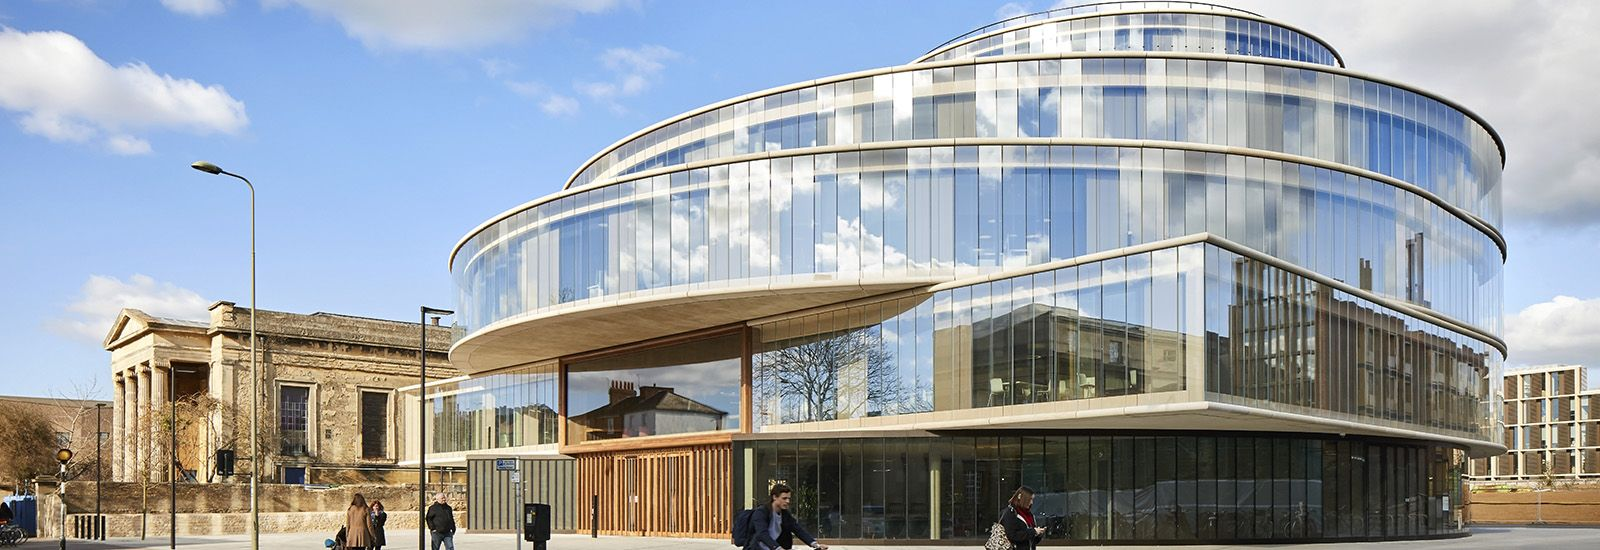 The Blavatnik School of Government building on a sunny day